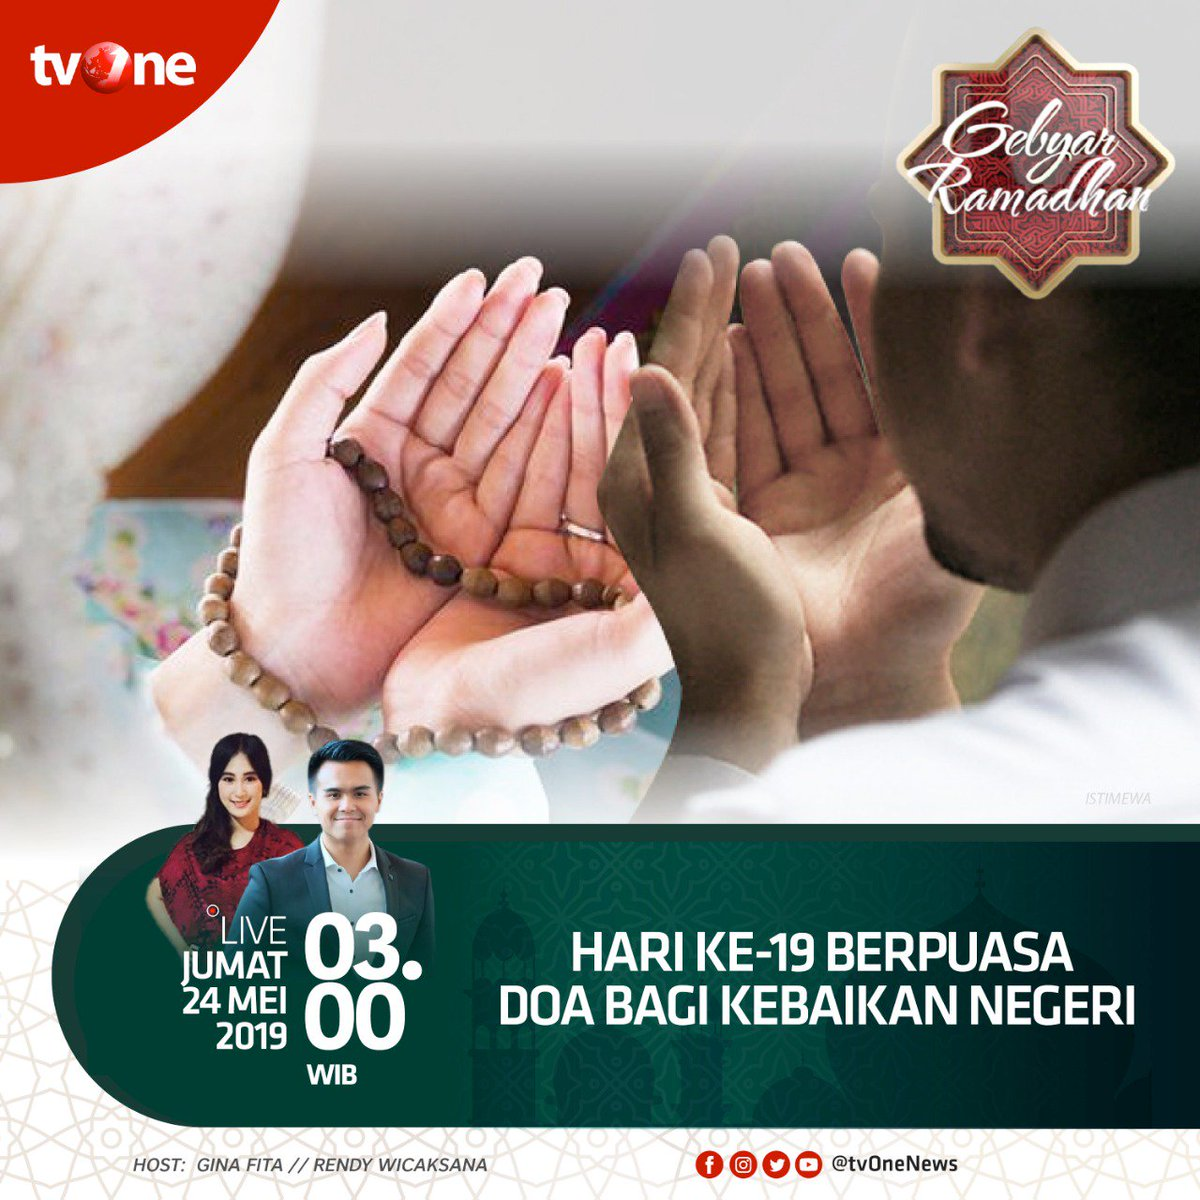 Hari ke-19 berpuasa doa bagi kebaikan negeri.Jumat, 24 Mei 2019 jam 03.00 WIB hanya di tvOne & streaming di tvOne connect, android http://bit.ly/2CMmL5z   & ios http://apple.co/2Q00Mfc  #GebyarRamadhantvOne #RamadhanditvOne